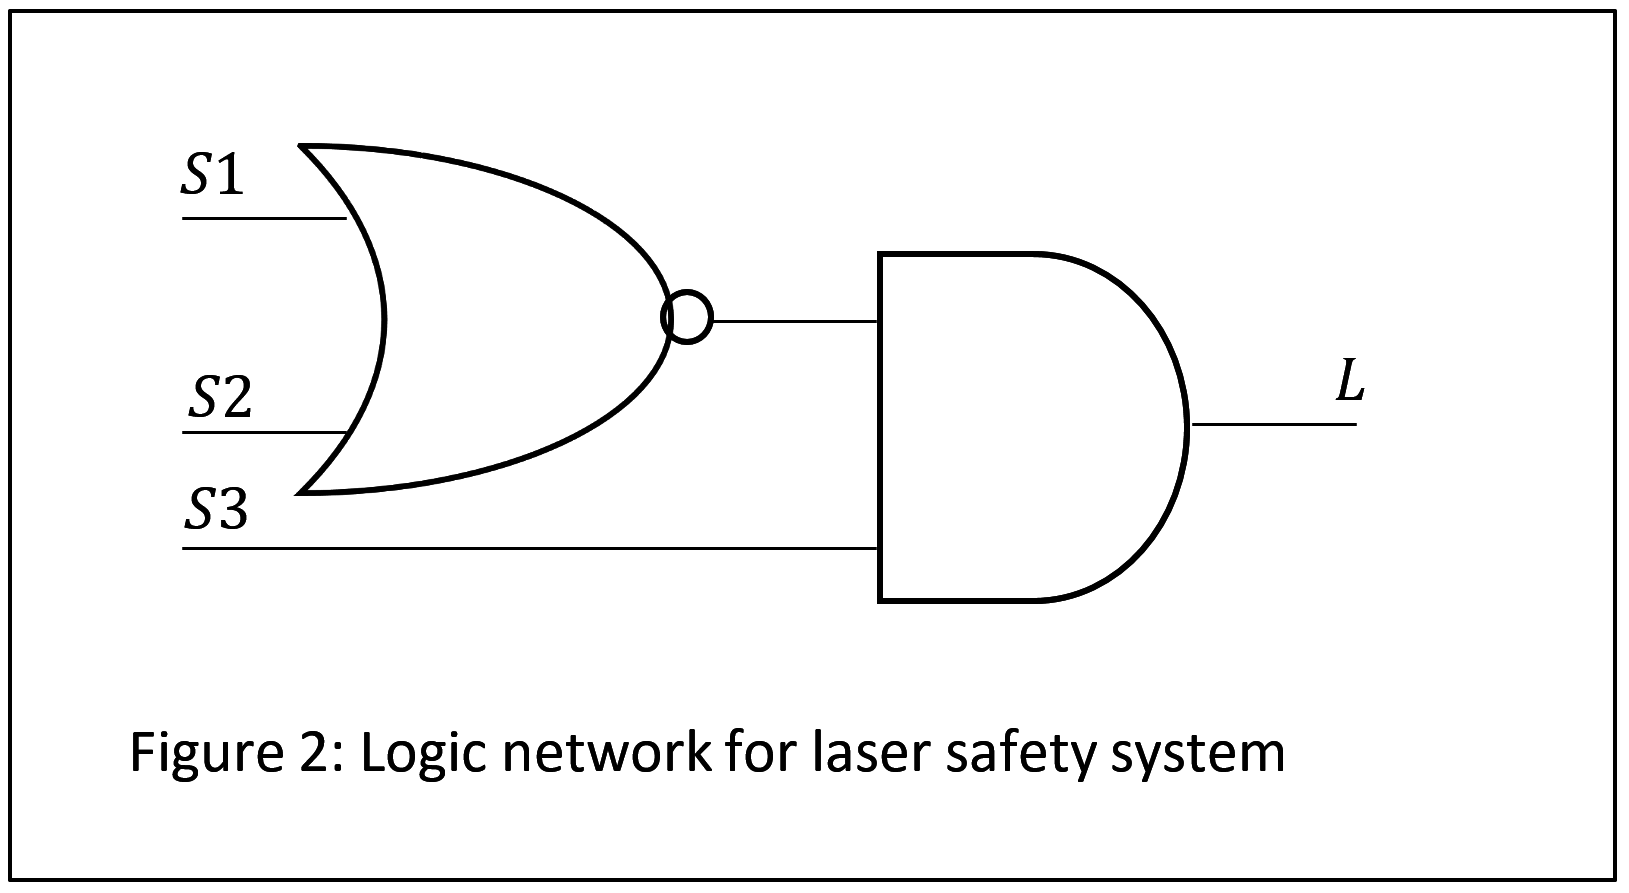 Digital Logic Examples Electrical Engineering Circuit Symbols View Diagram Figure 2 Network For Laser Safety Click To Expand